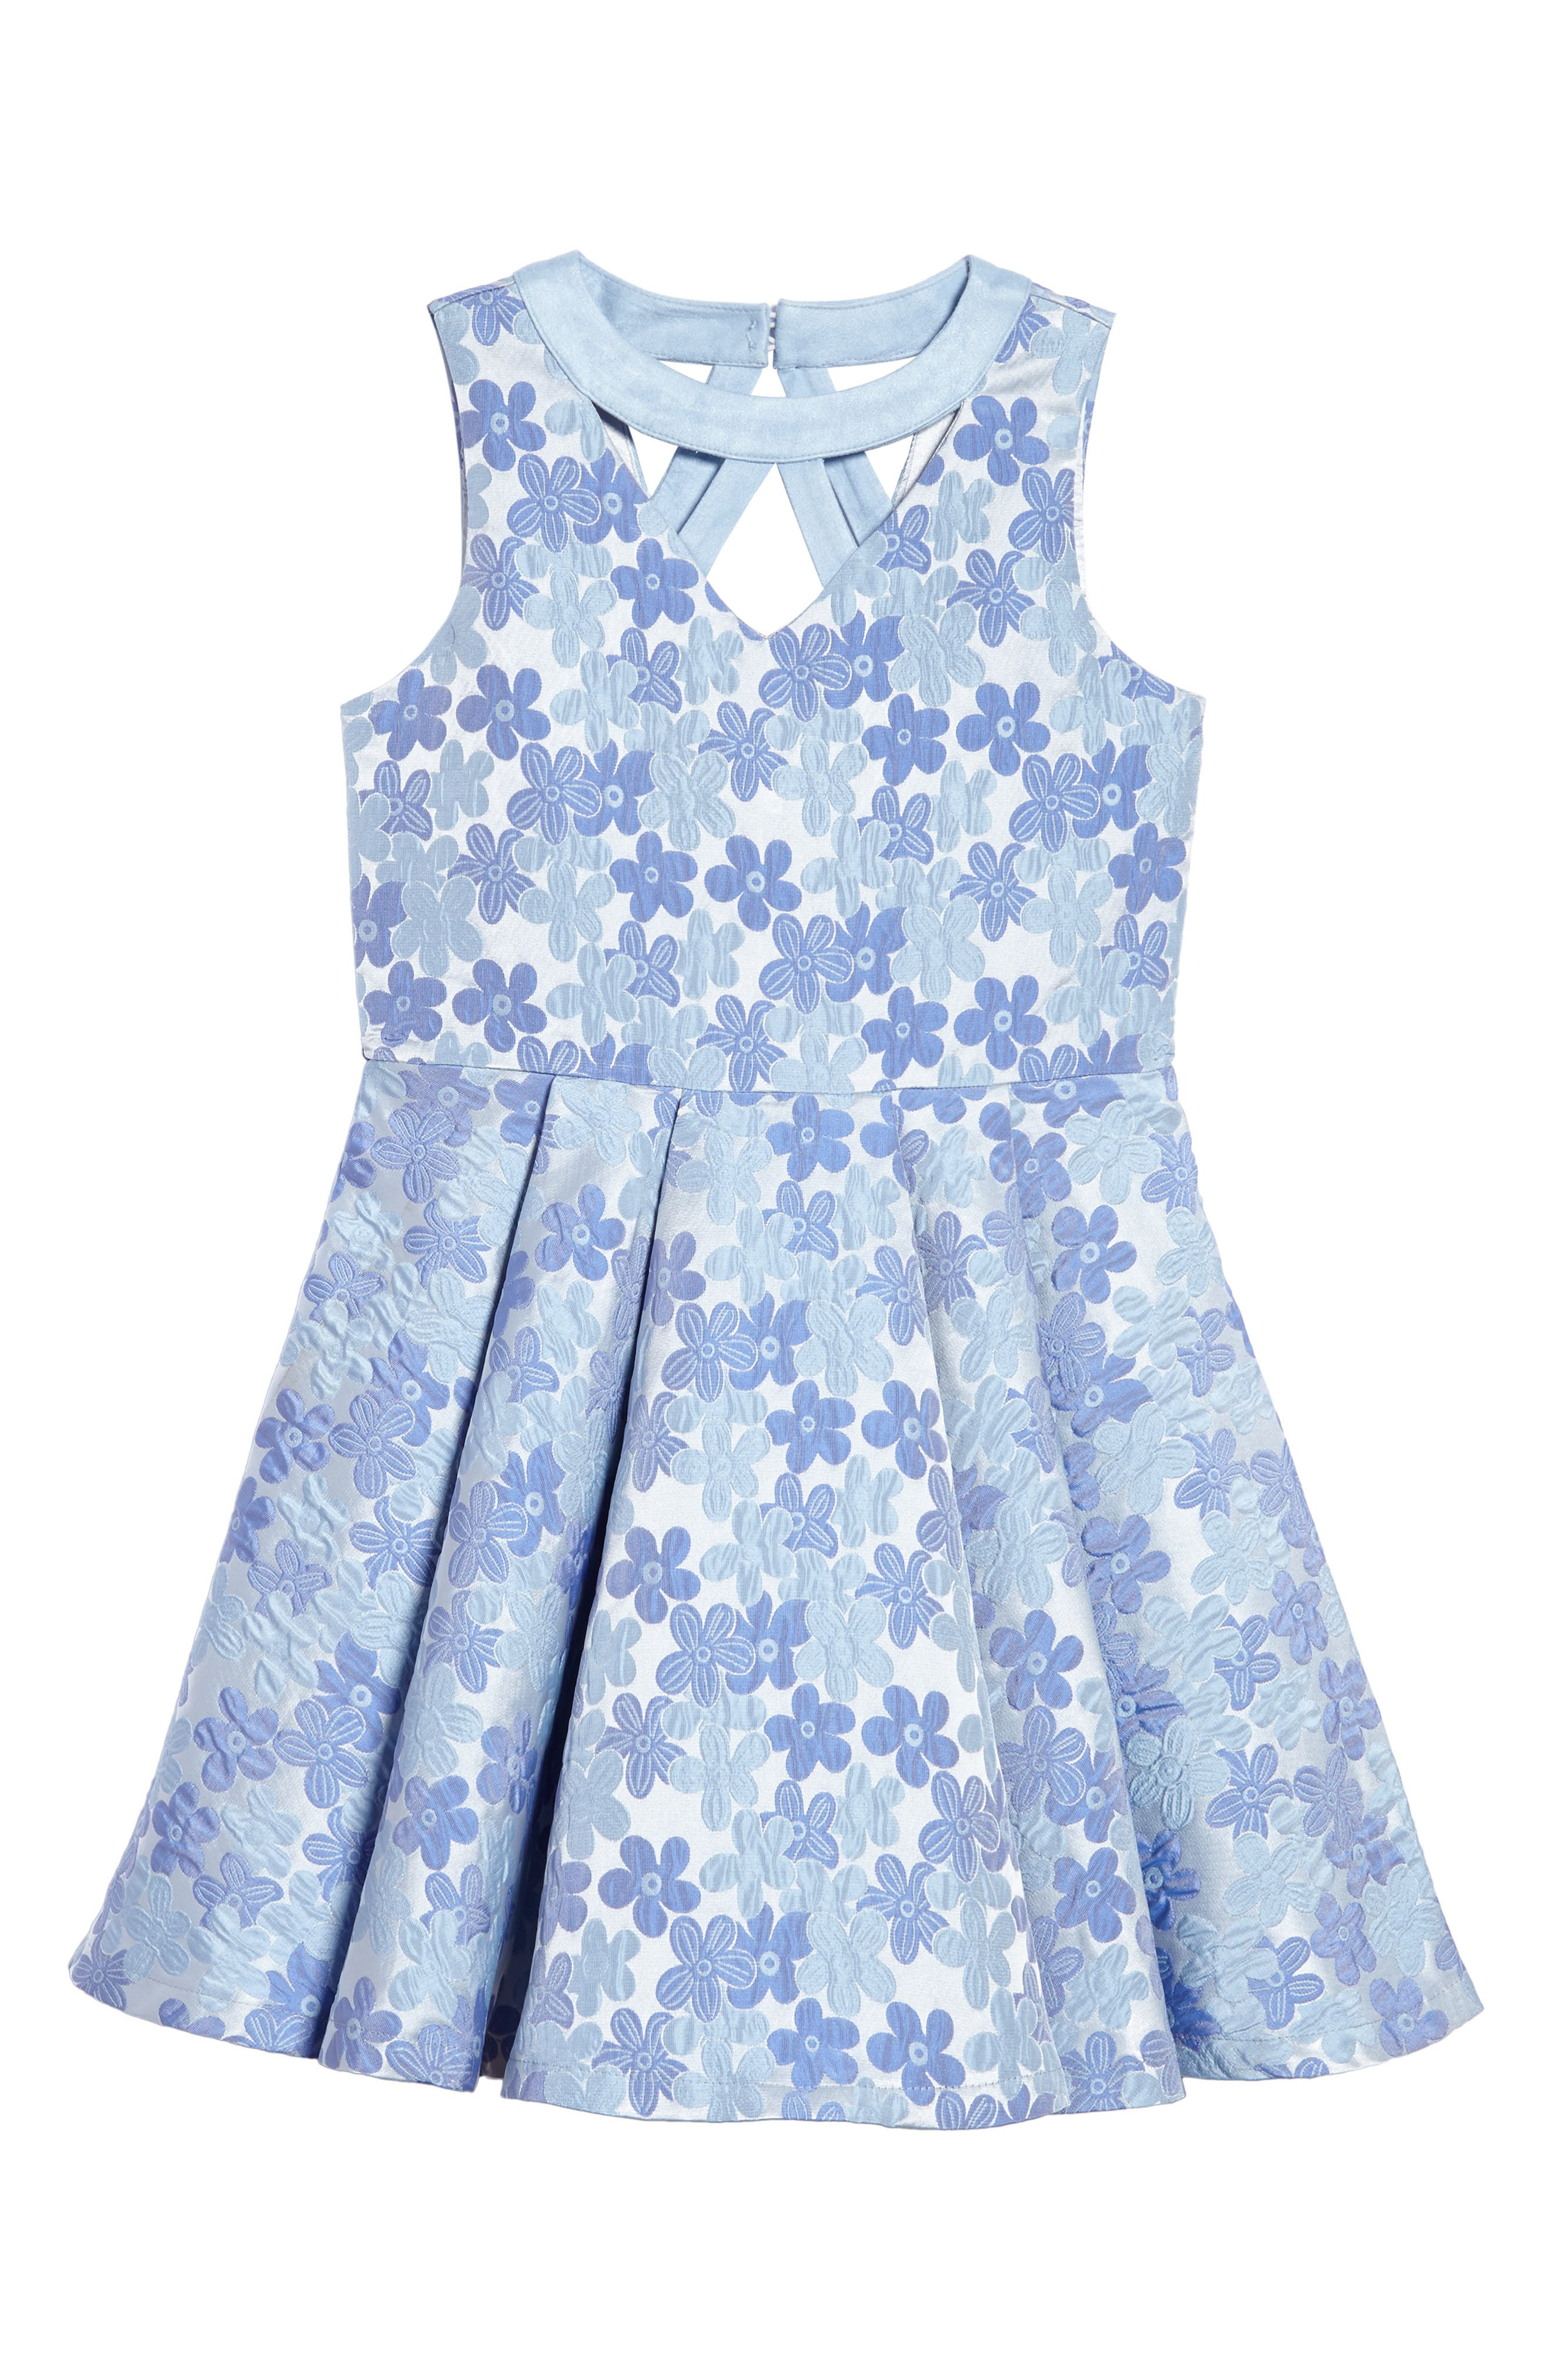 Daisy Brocade Fit & Flare Dress,                         Main,                         color, Periwinkle